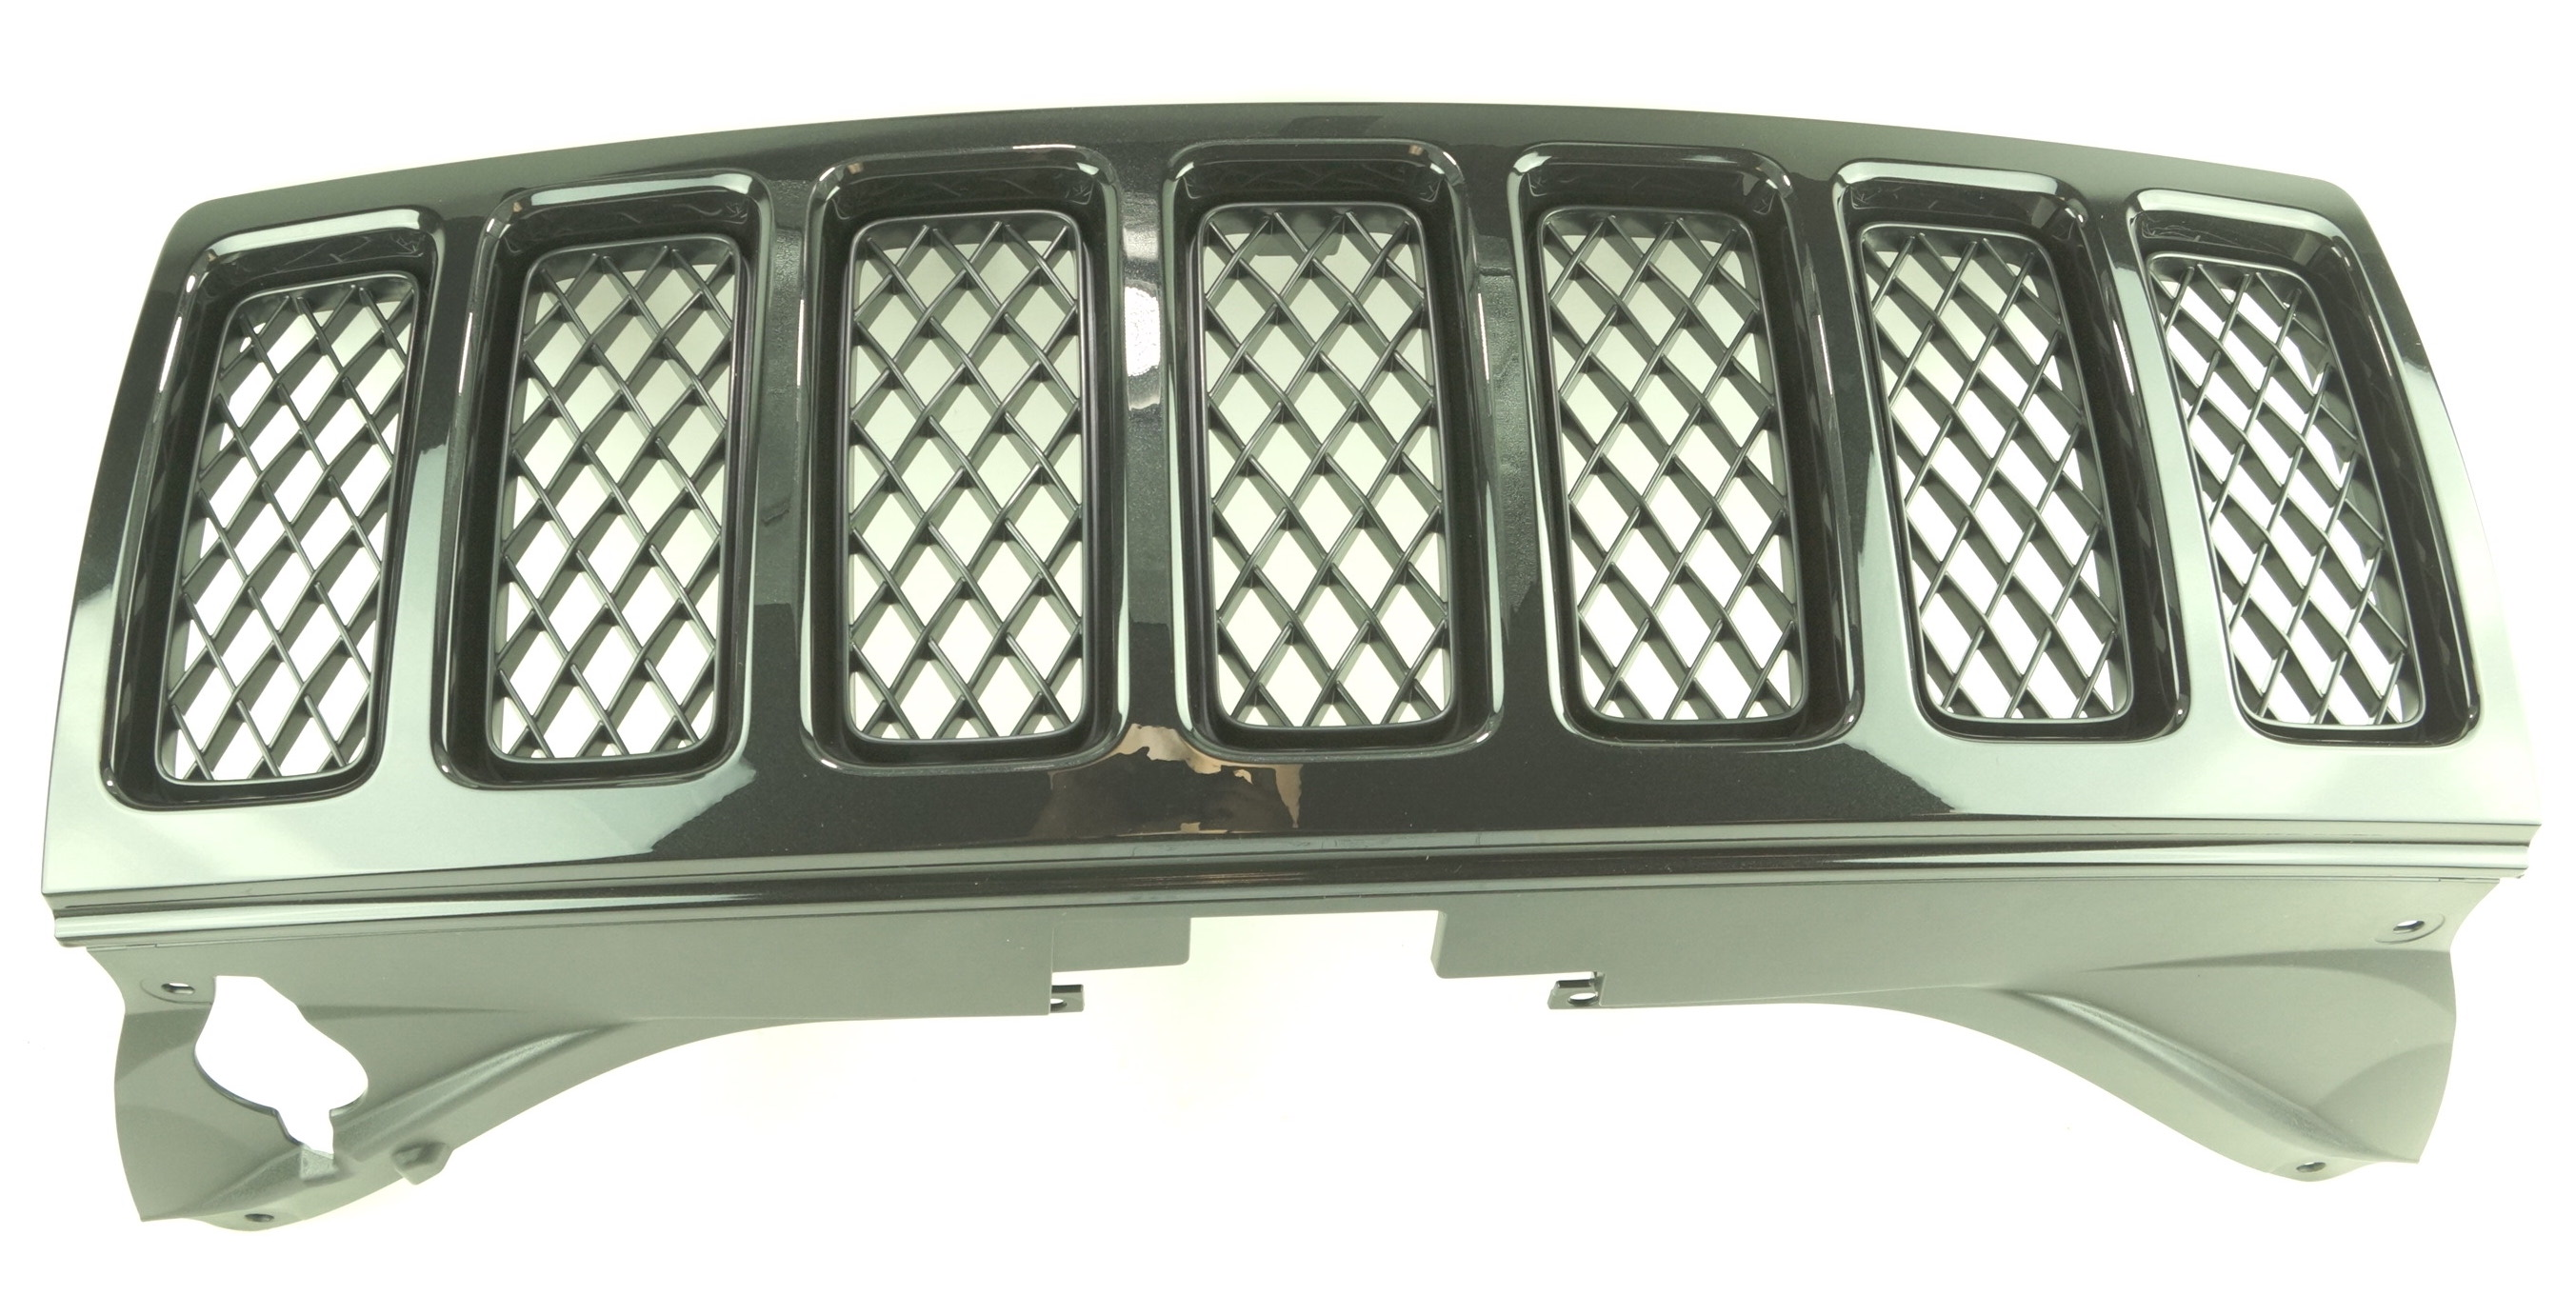 New OEM 1FW131XR-AC 08-10 Jeep Grand Cherokee Black Radiator Grille Assembly - image 1